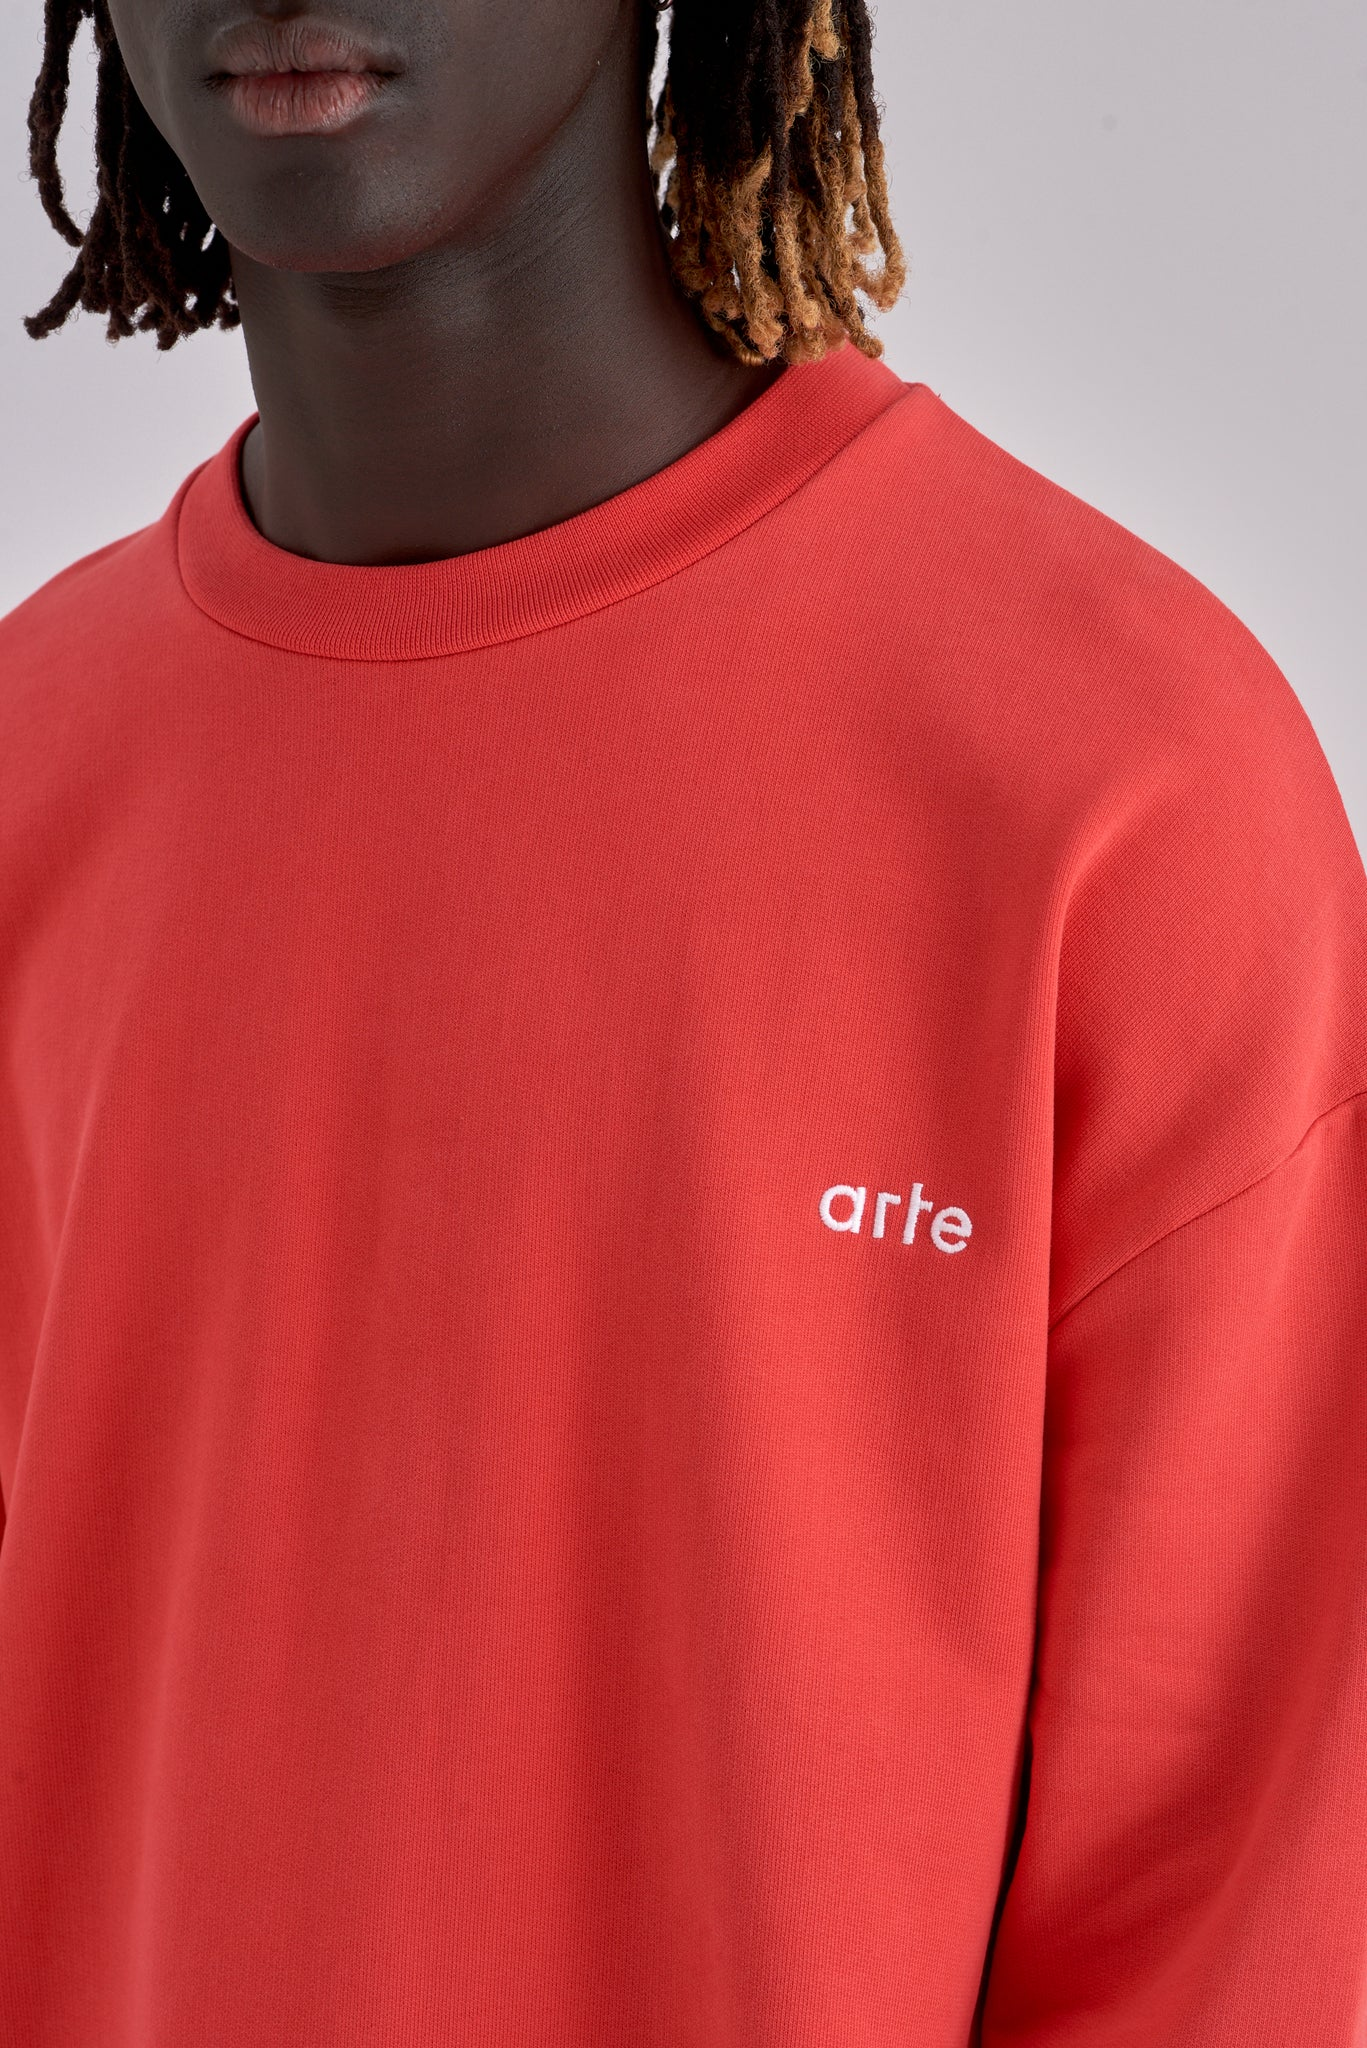 Caleb Red Sweater - Arte Antwerp